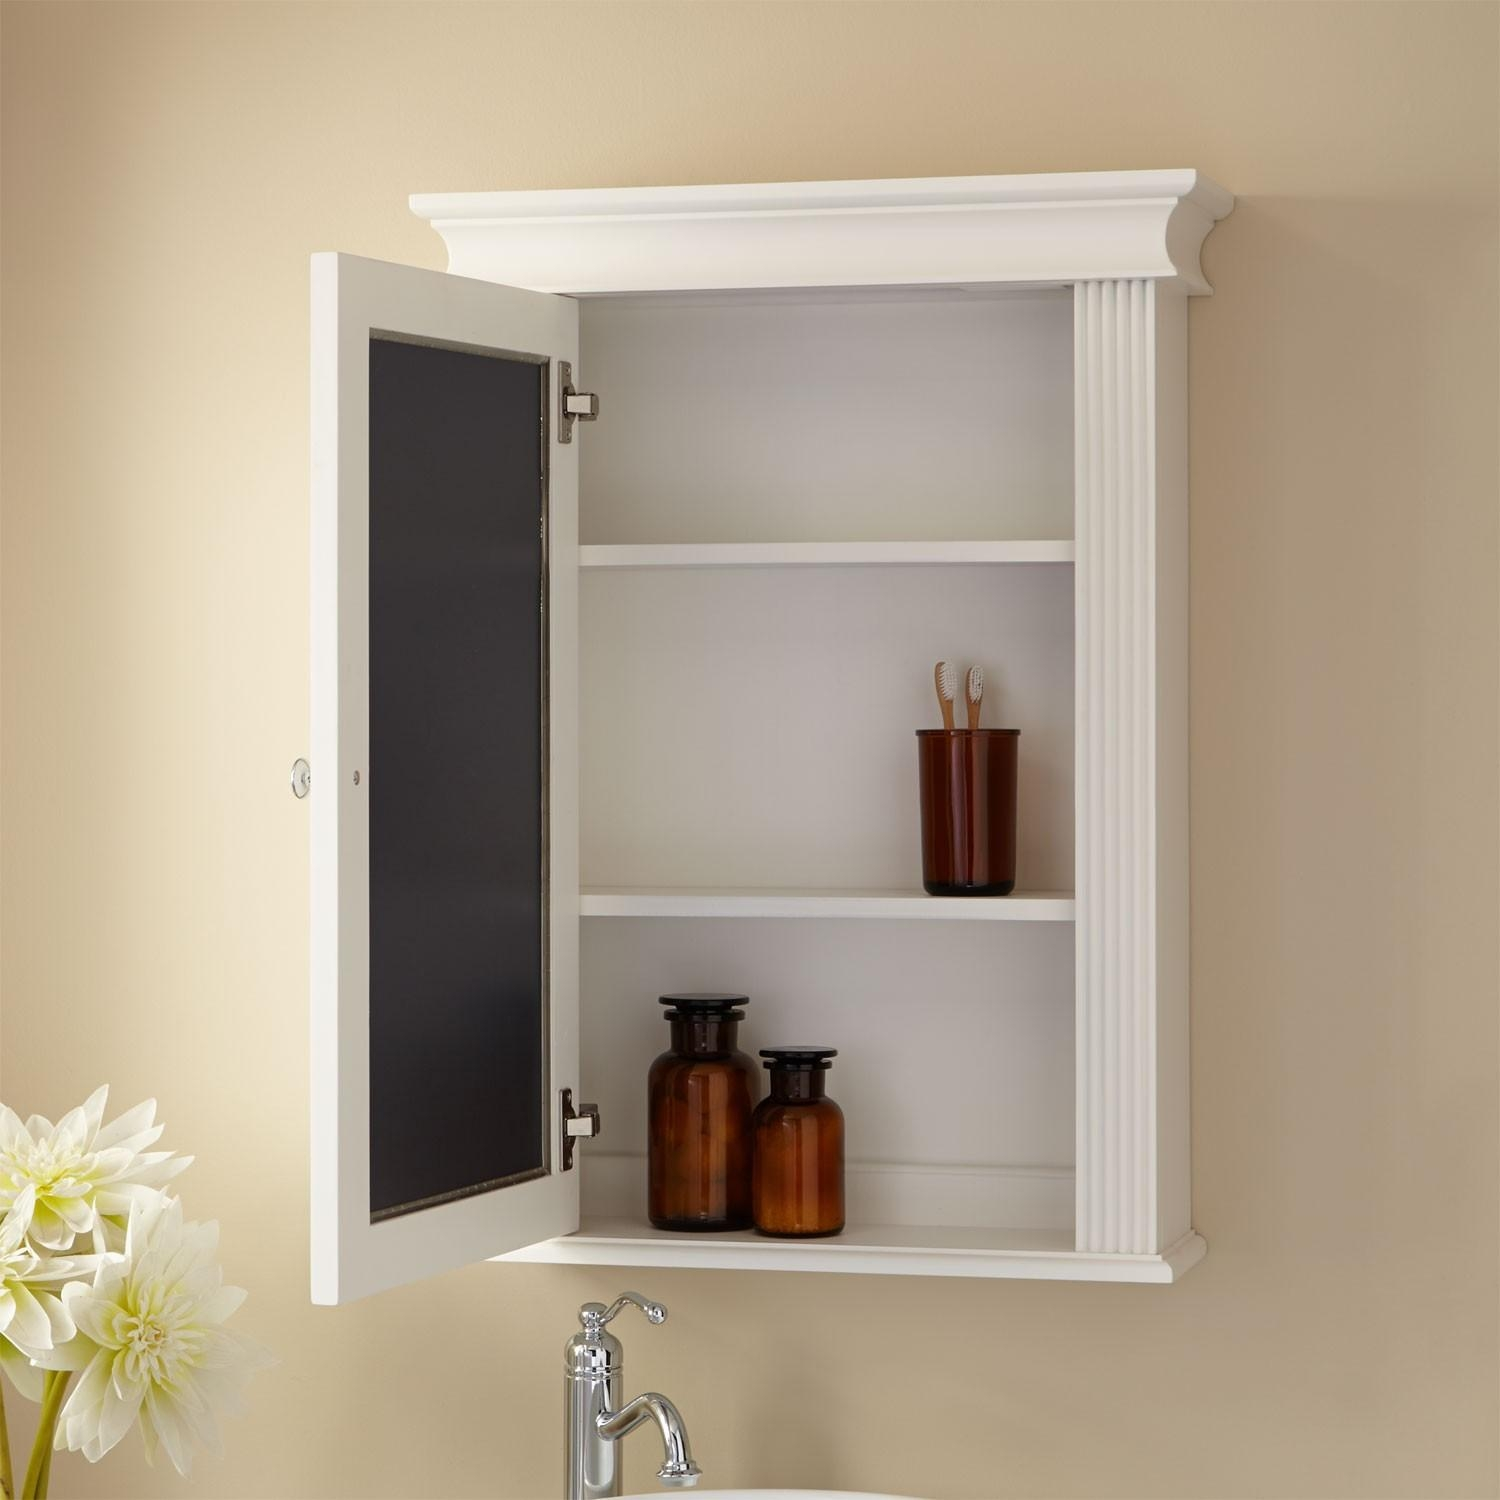 Bathroom Cabinets : Espresso Mirror Bathroom Medicine Cabinet In Bathroom Medicine Cabinets With Mirrors (Image 4 of 20)